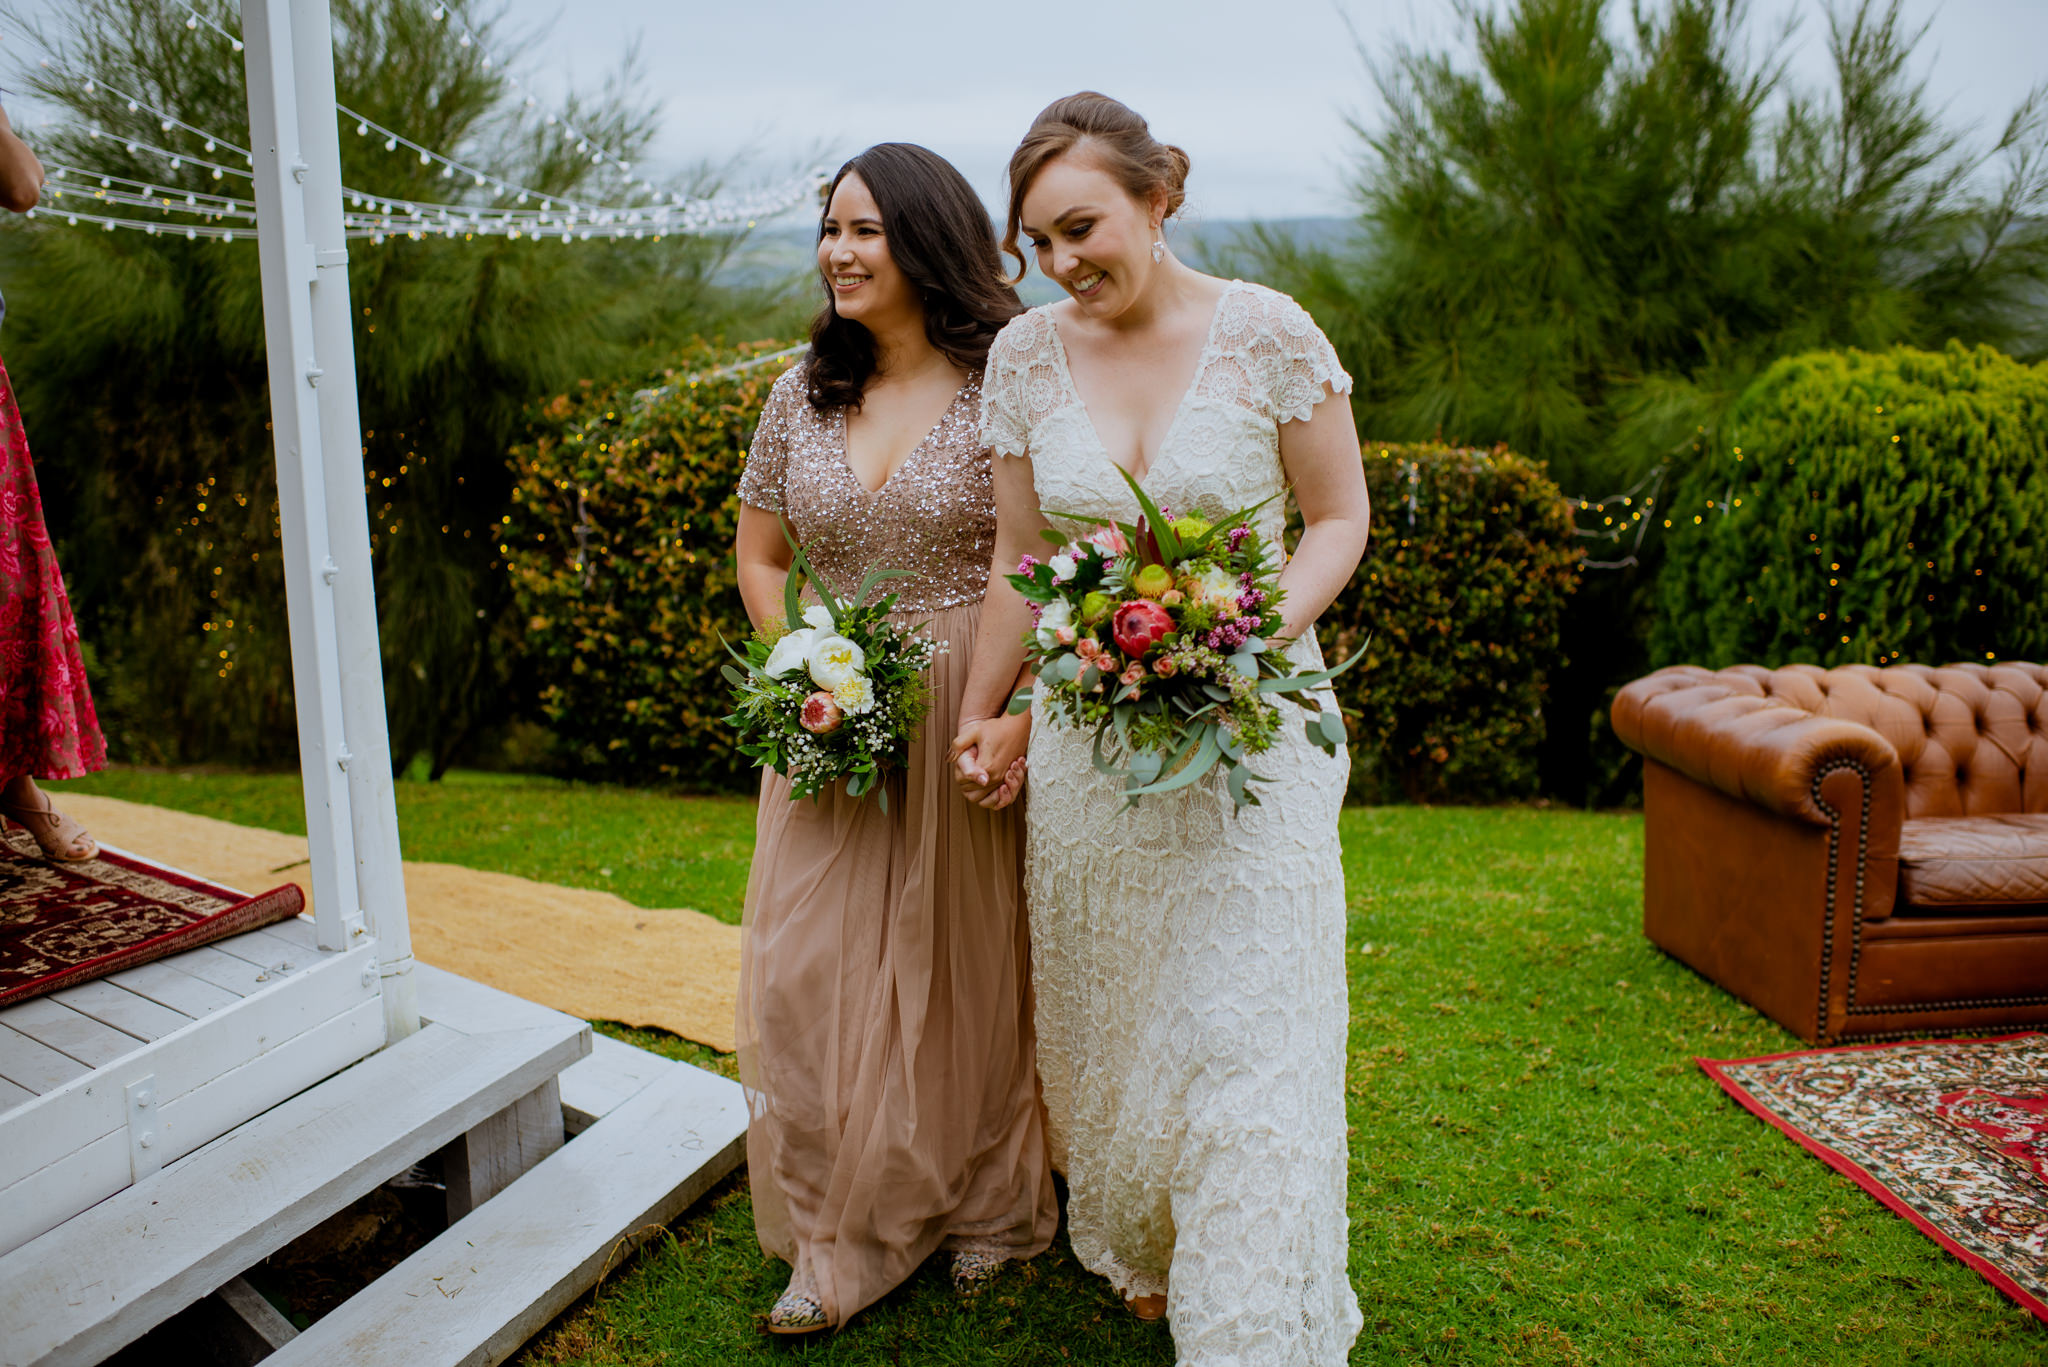 Two brides walk hand-in-hand on grass next to a verandah